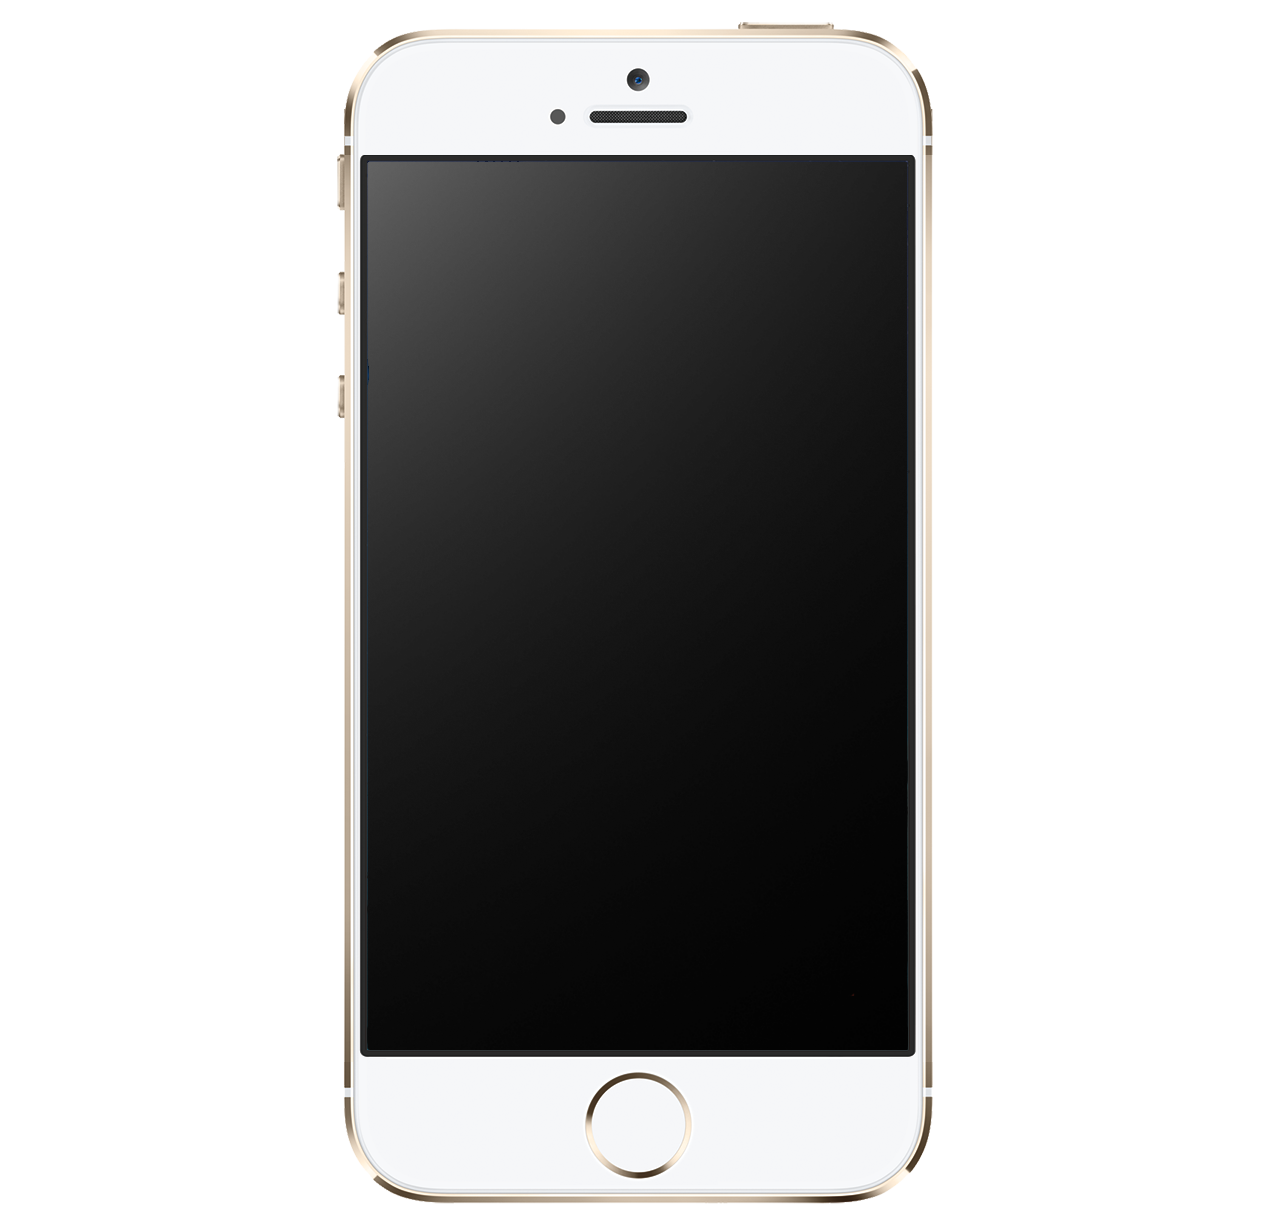 Iphone Apple PNG Image.